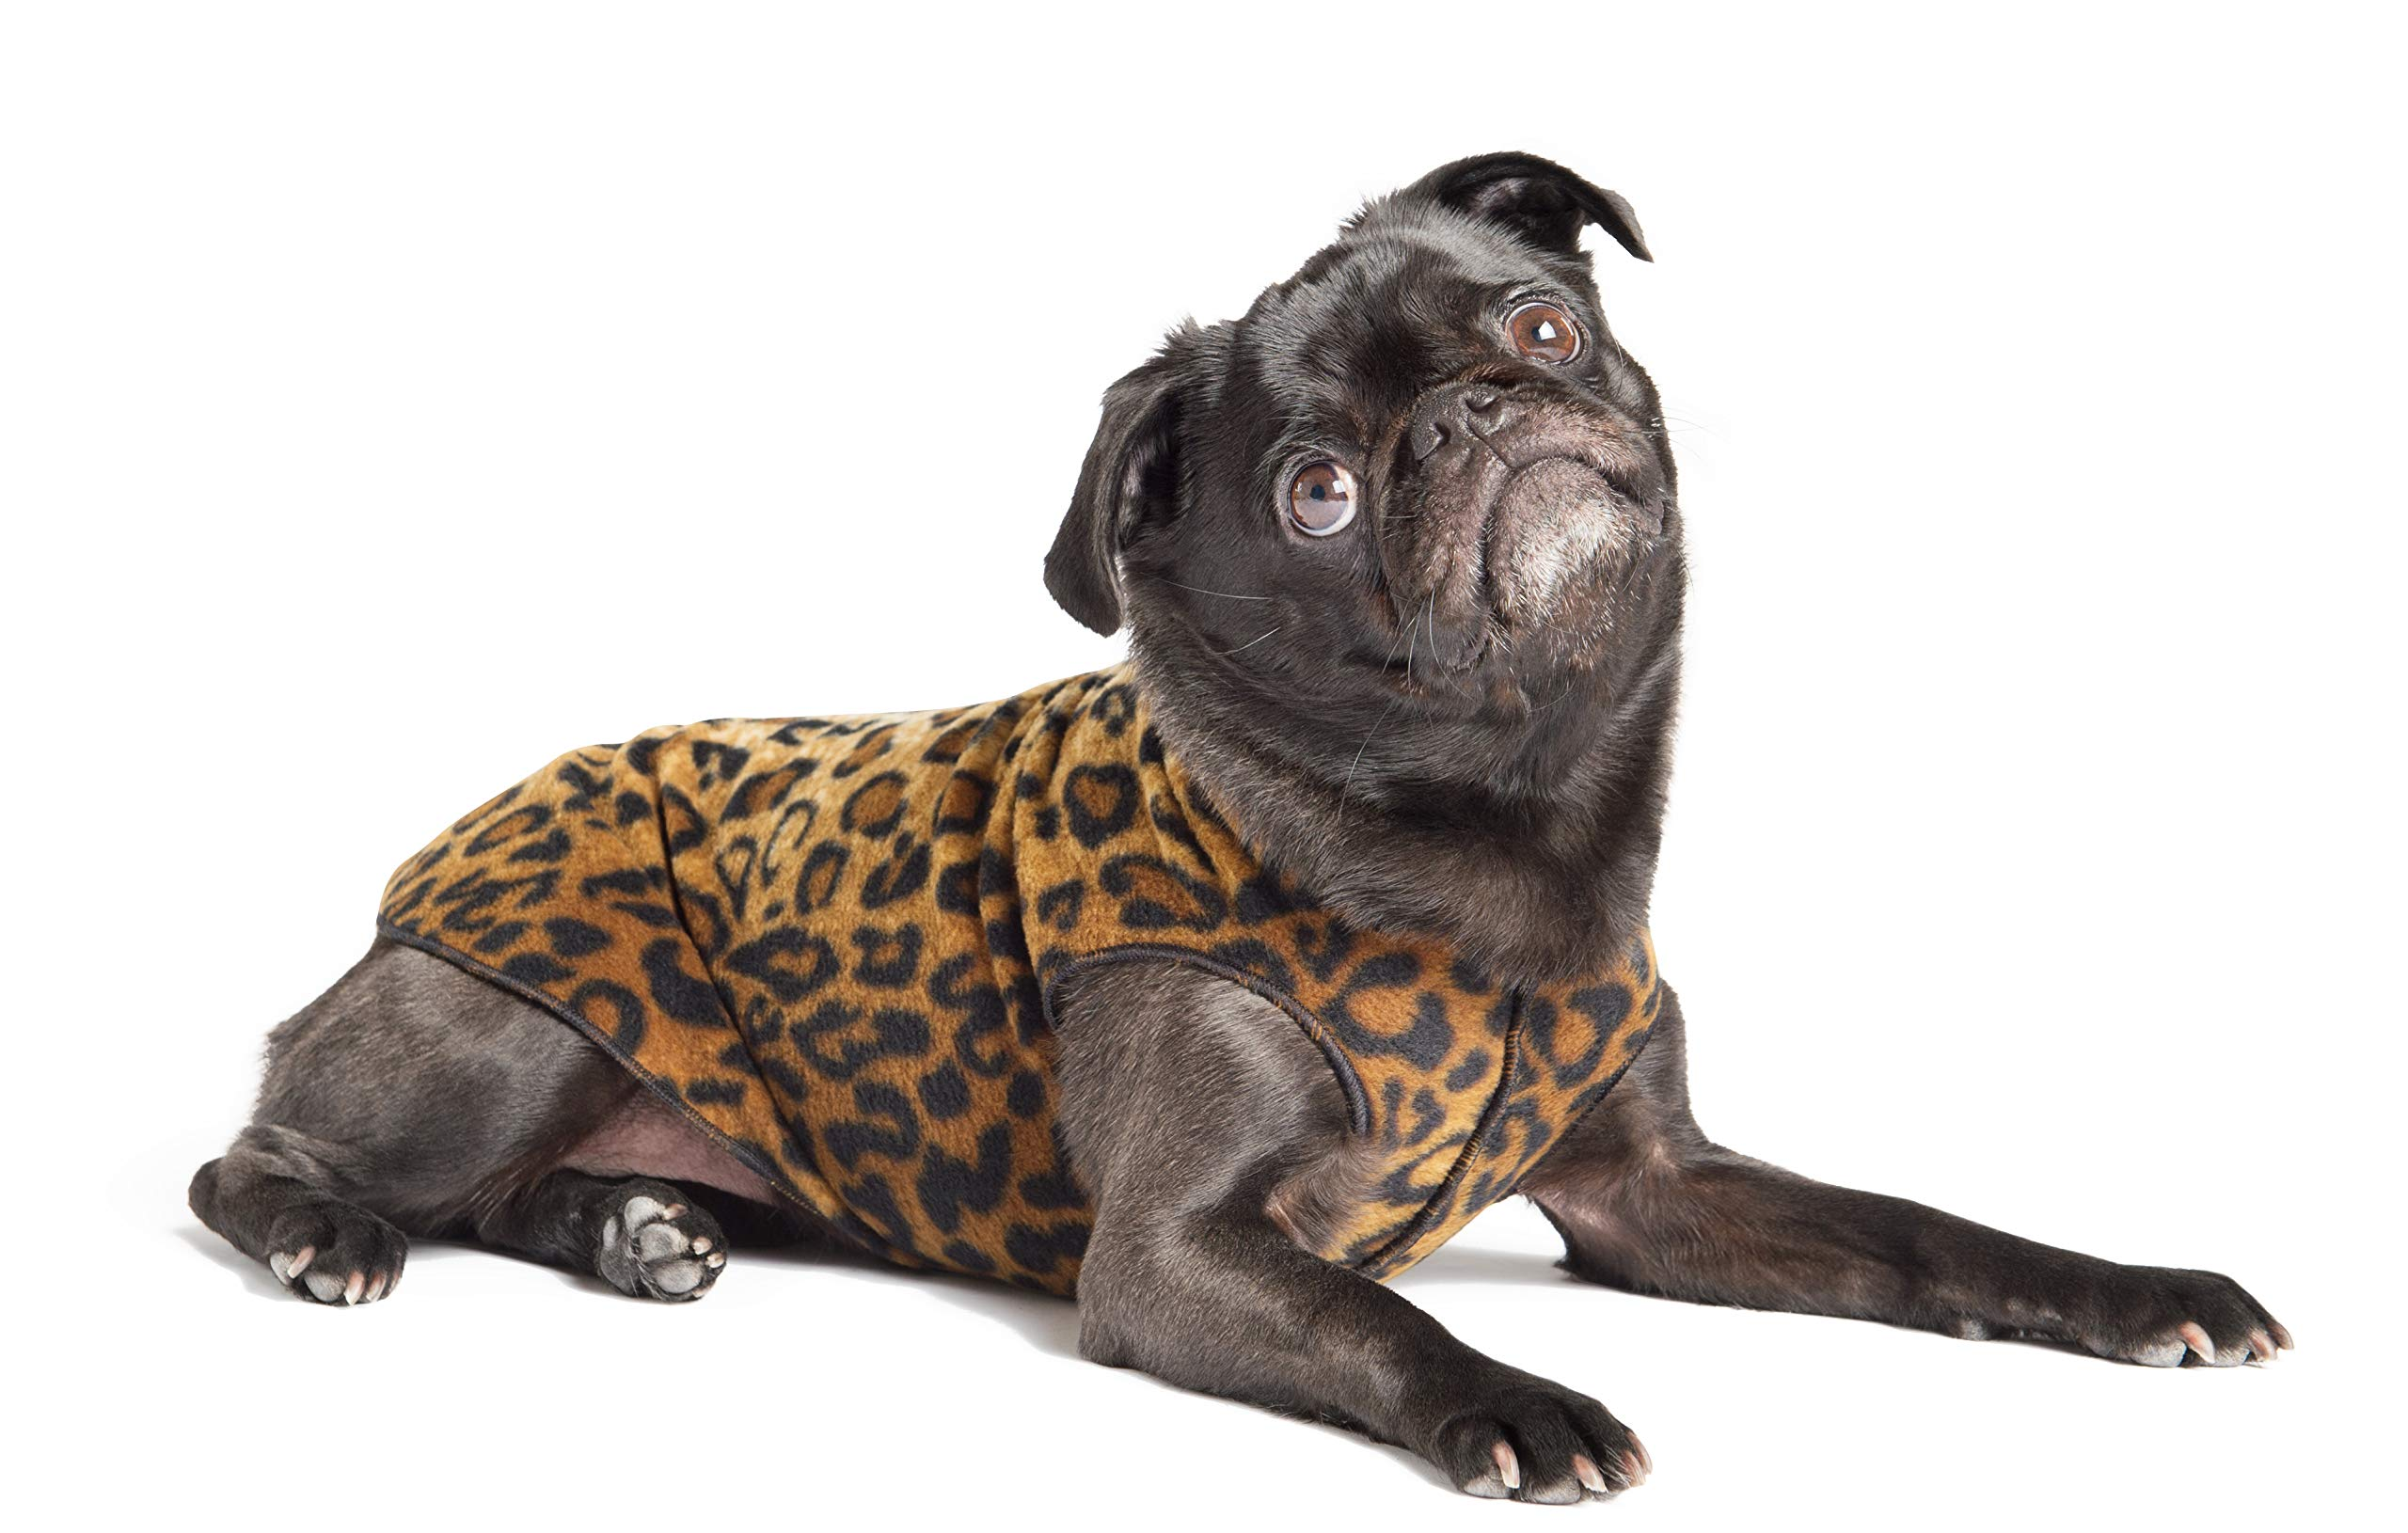 Gold Paw Stretch Fleece Dog Coat - Soft, Warm Dog Clothes, Stretchy Pet Sweater - Machine Washable, Eco Friendly - All Season - Sizes 2-33, Leopard, Size 10 by Gold Paw